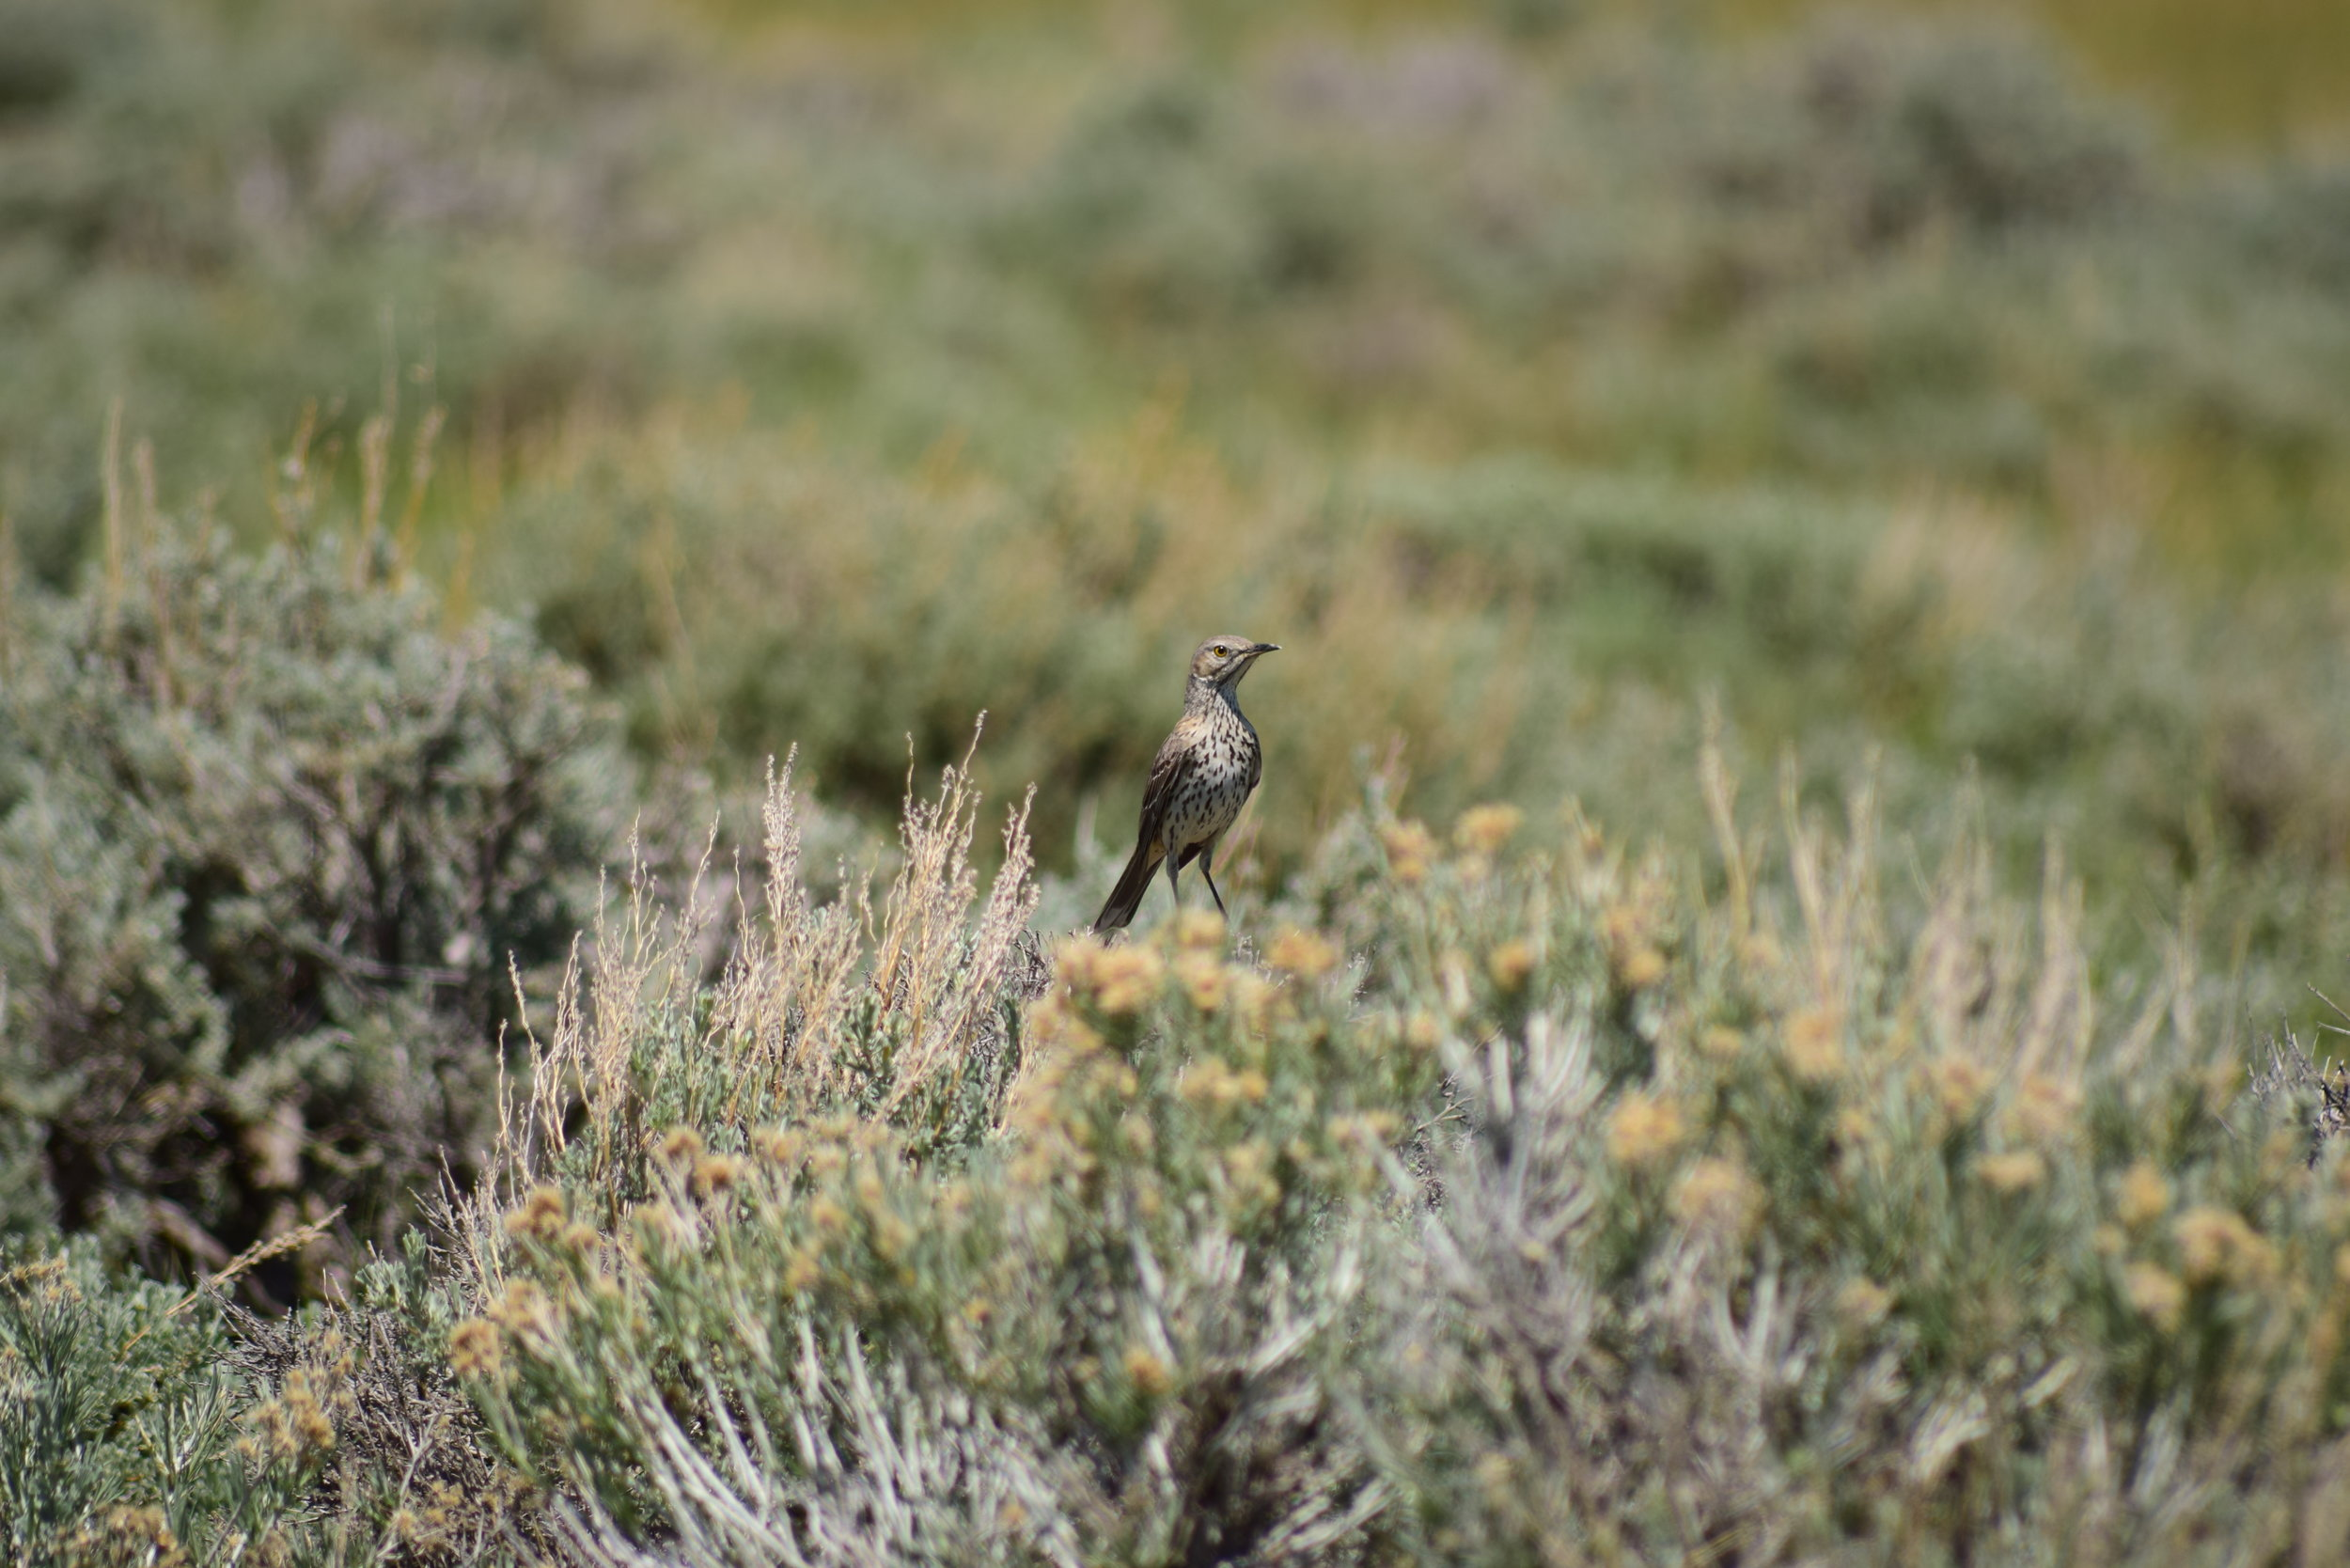 A sage thrasher (Oreoscoptes montanus). Populations of sage thrashers, another bird species that depends on healthy sagebrush-steppe, are expected to increase as the result of juniper removal near Rome Hill.